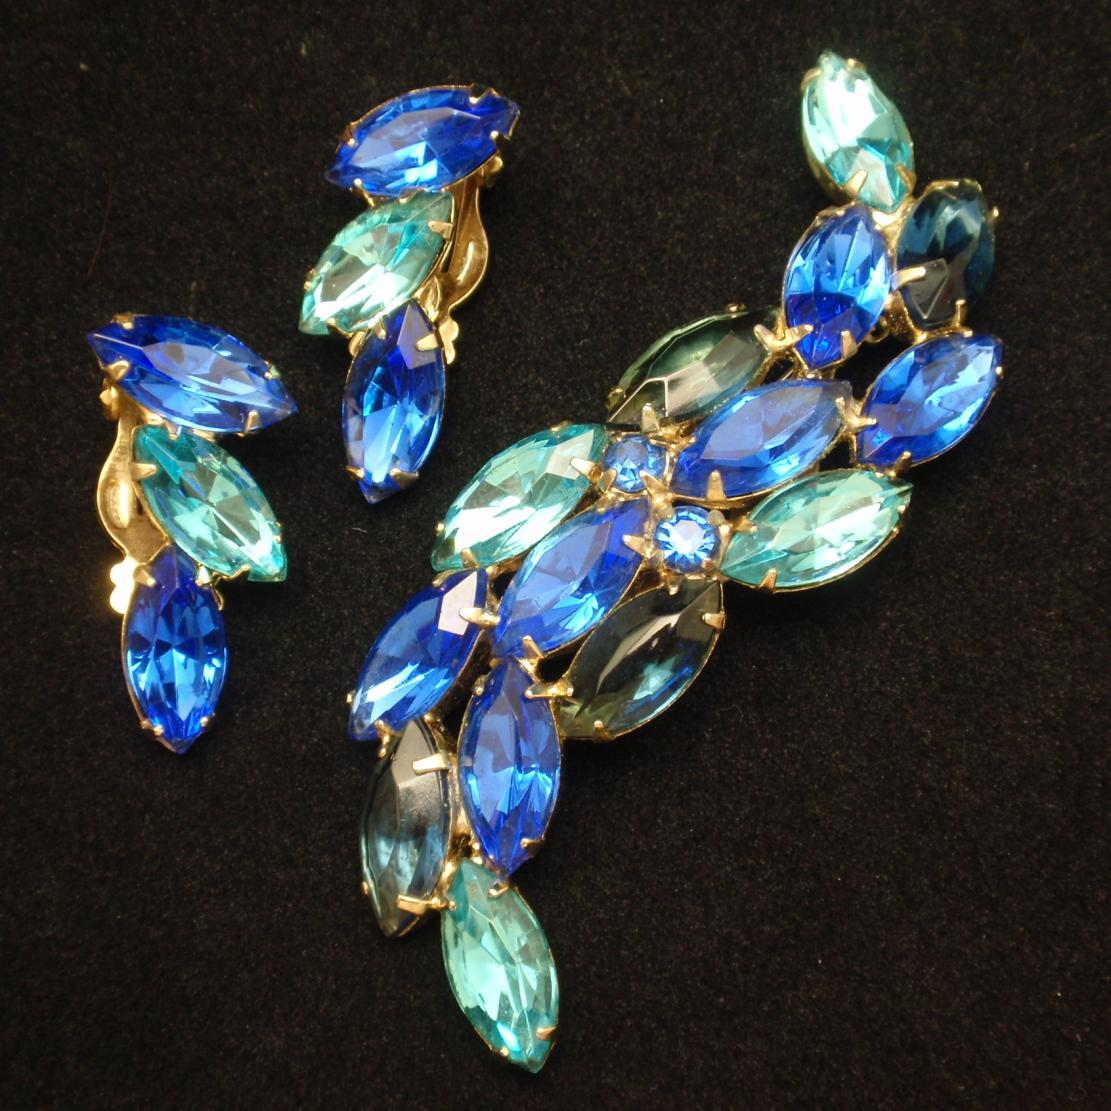 Vivid Blue Rhinestone Brooch Pin & Earrings Set Vintage